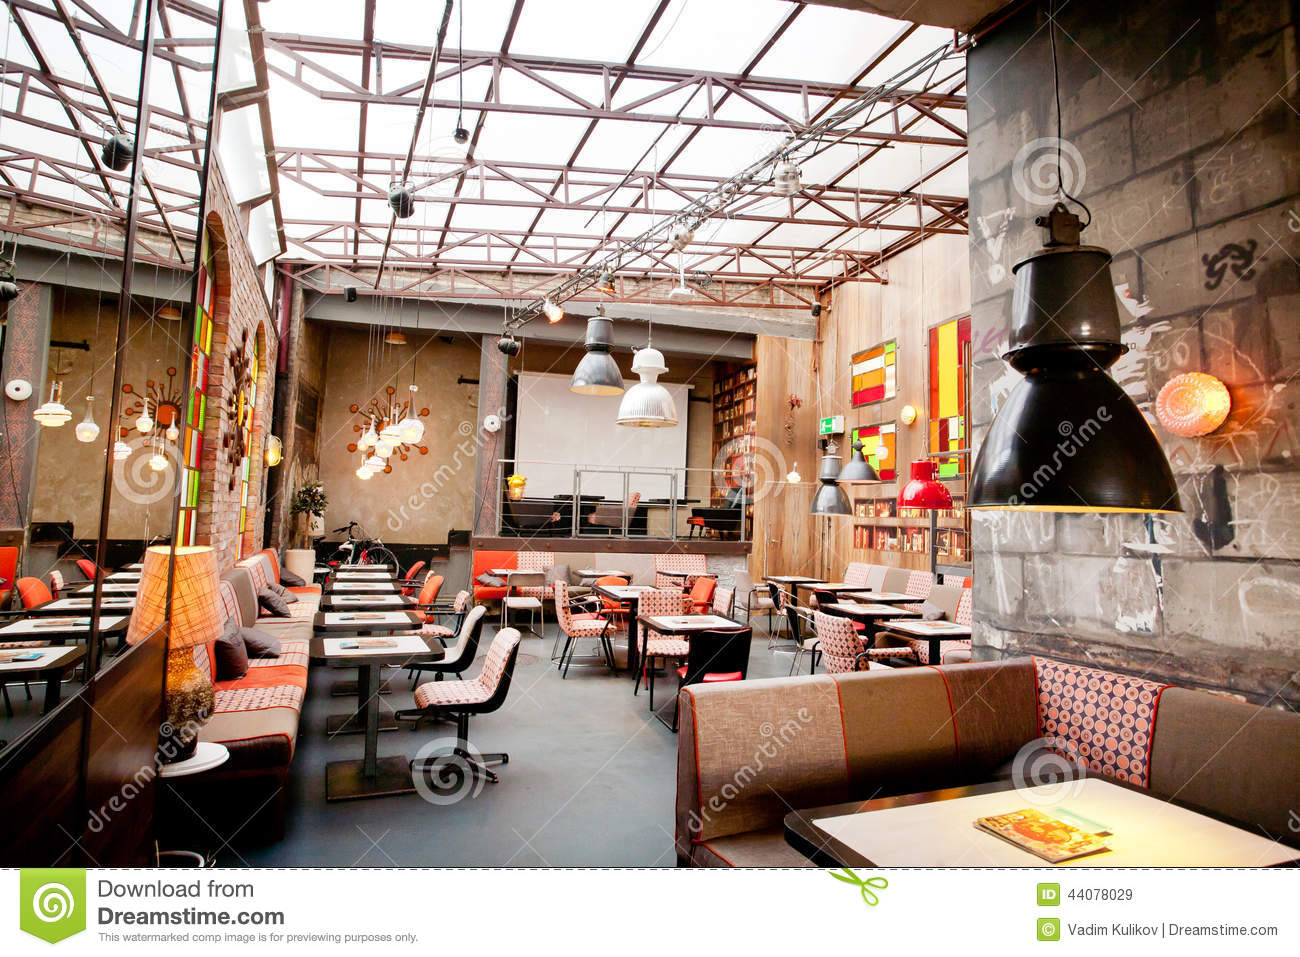 Interior design of a popular restaurant in the center